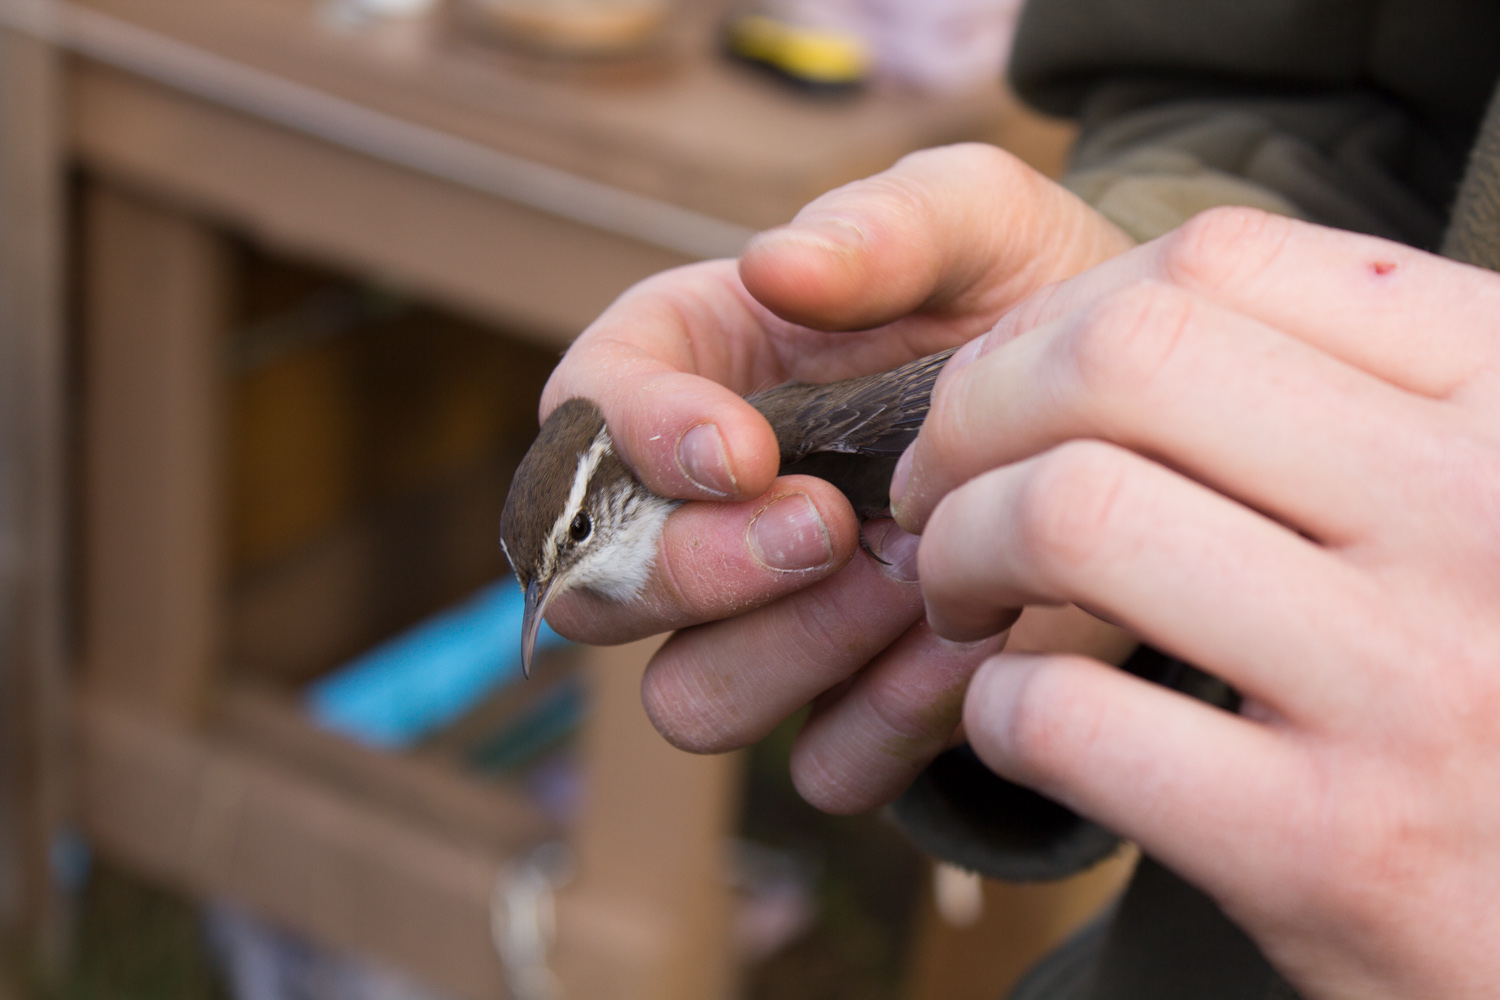 Bewick's Wren in the hand